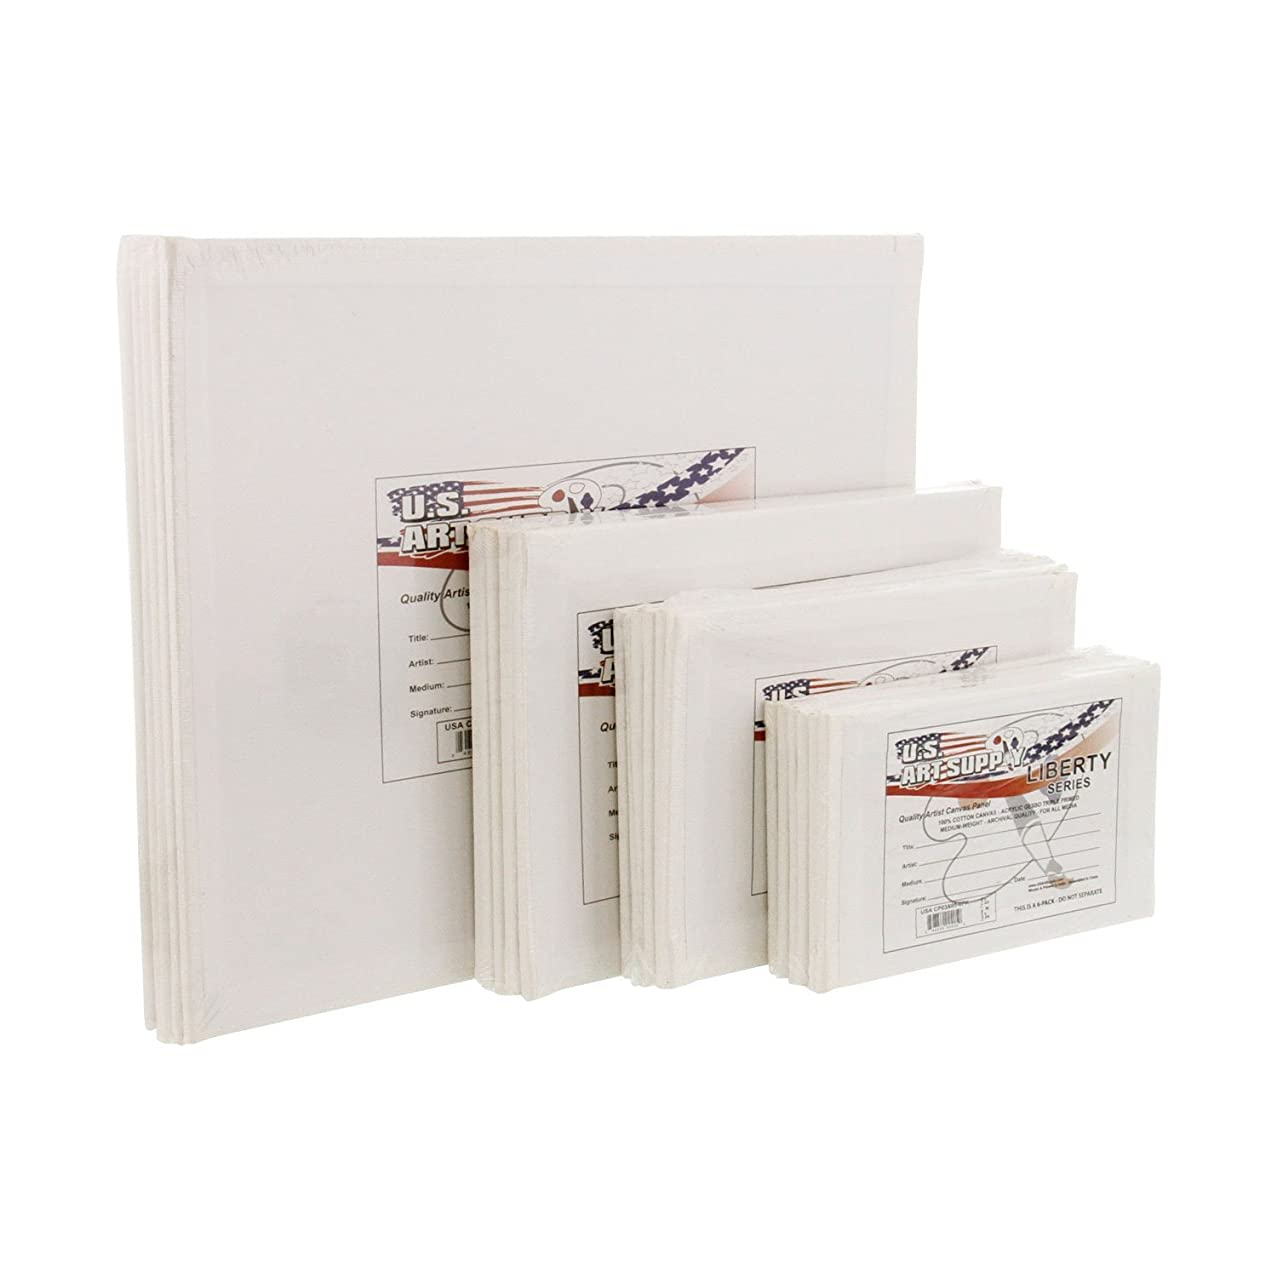 US Art Supply Multi-pack 6-Ea of 3 x 5, 4 x 6, 5 x 7, 8 x 10 inch Professional Quality Small Artist Canvas Panel Board Assortment Pack (24 Total Panel Boards)